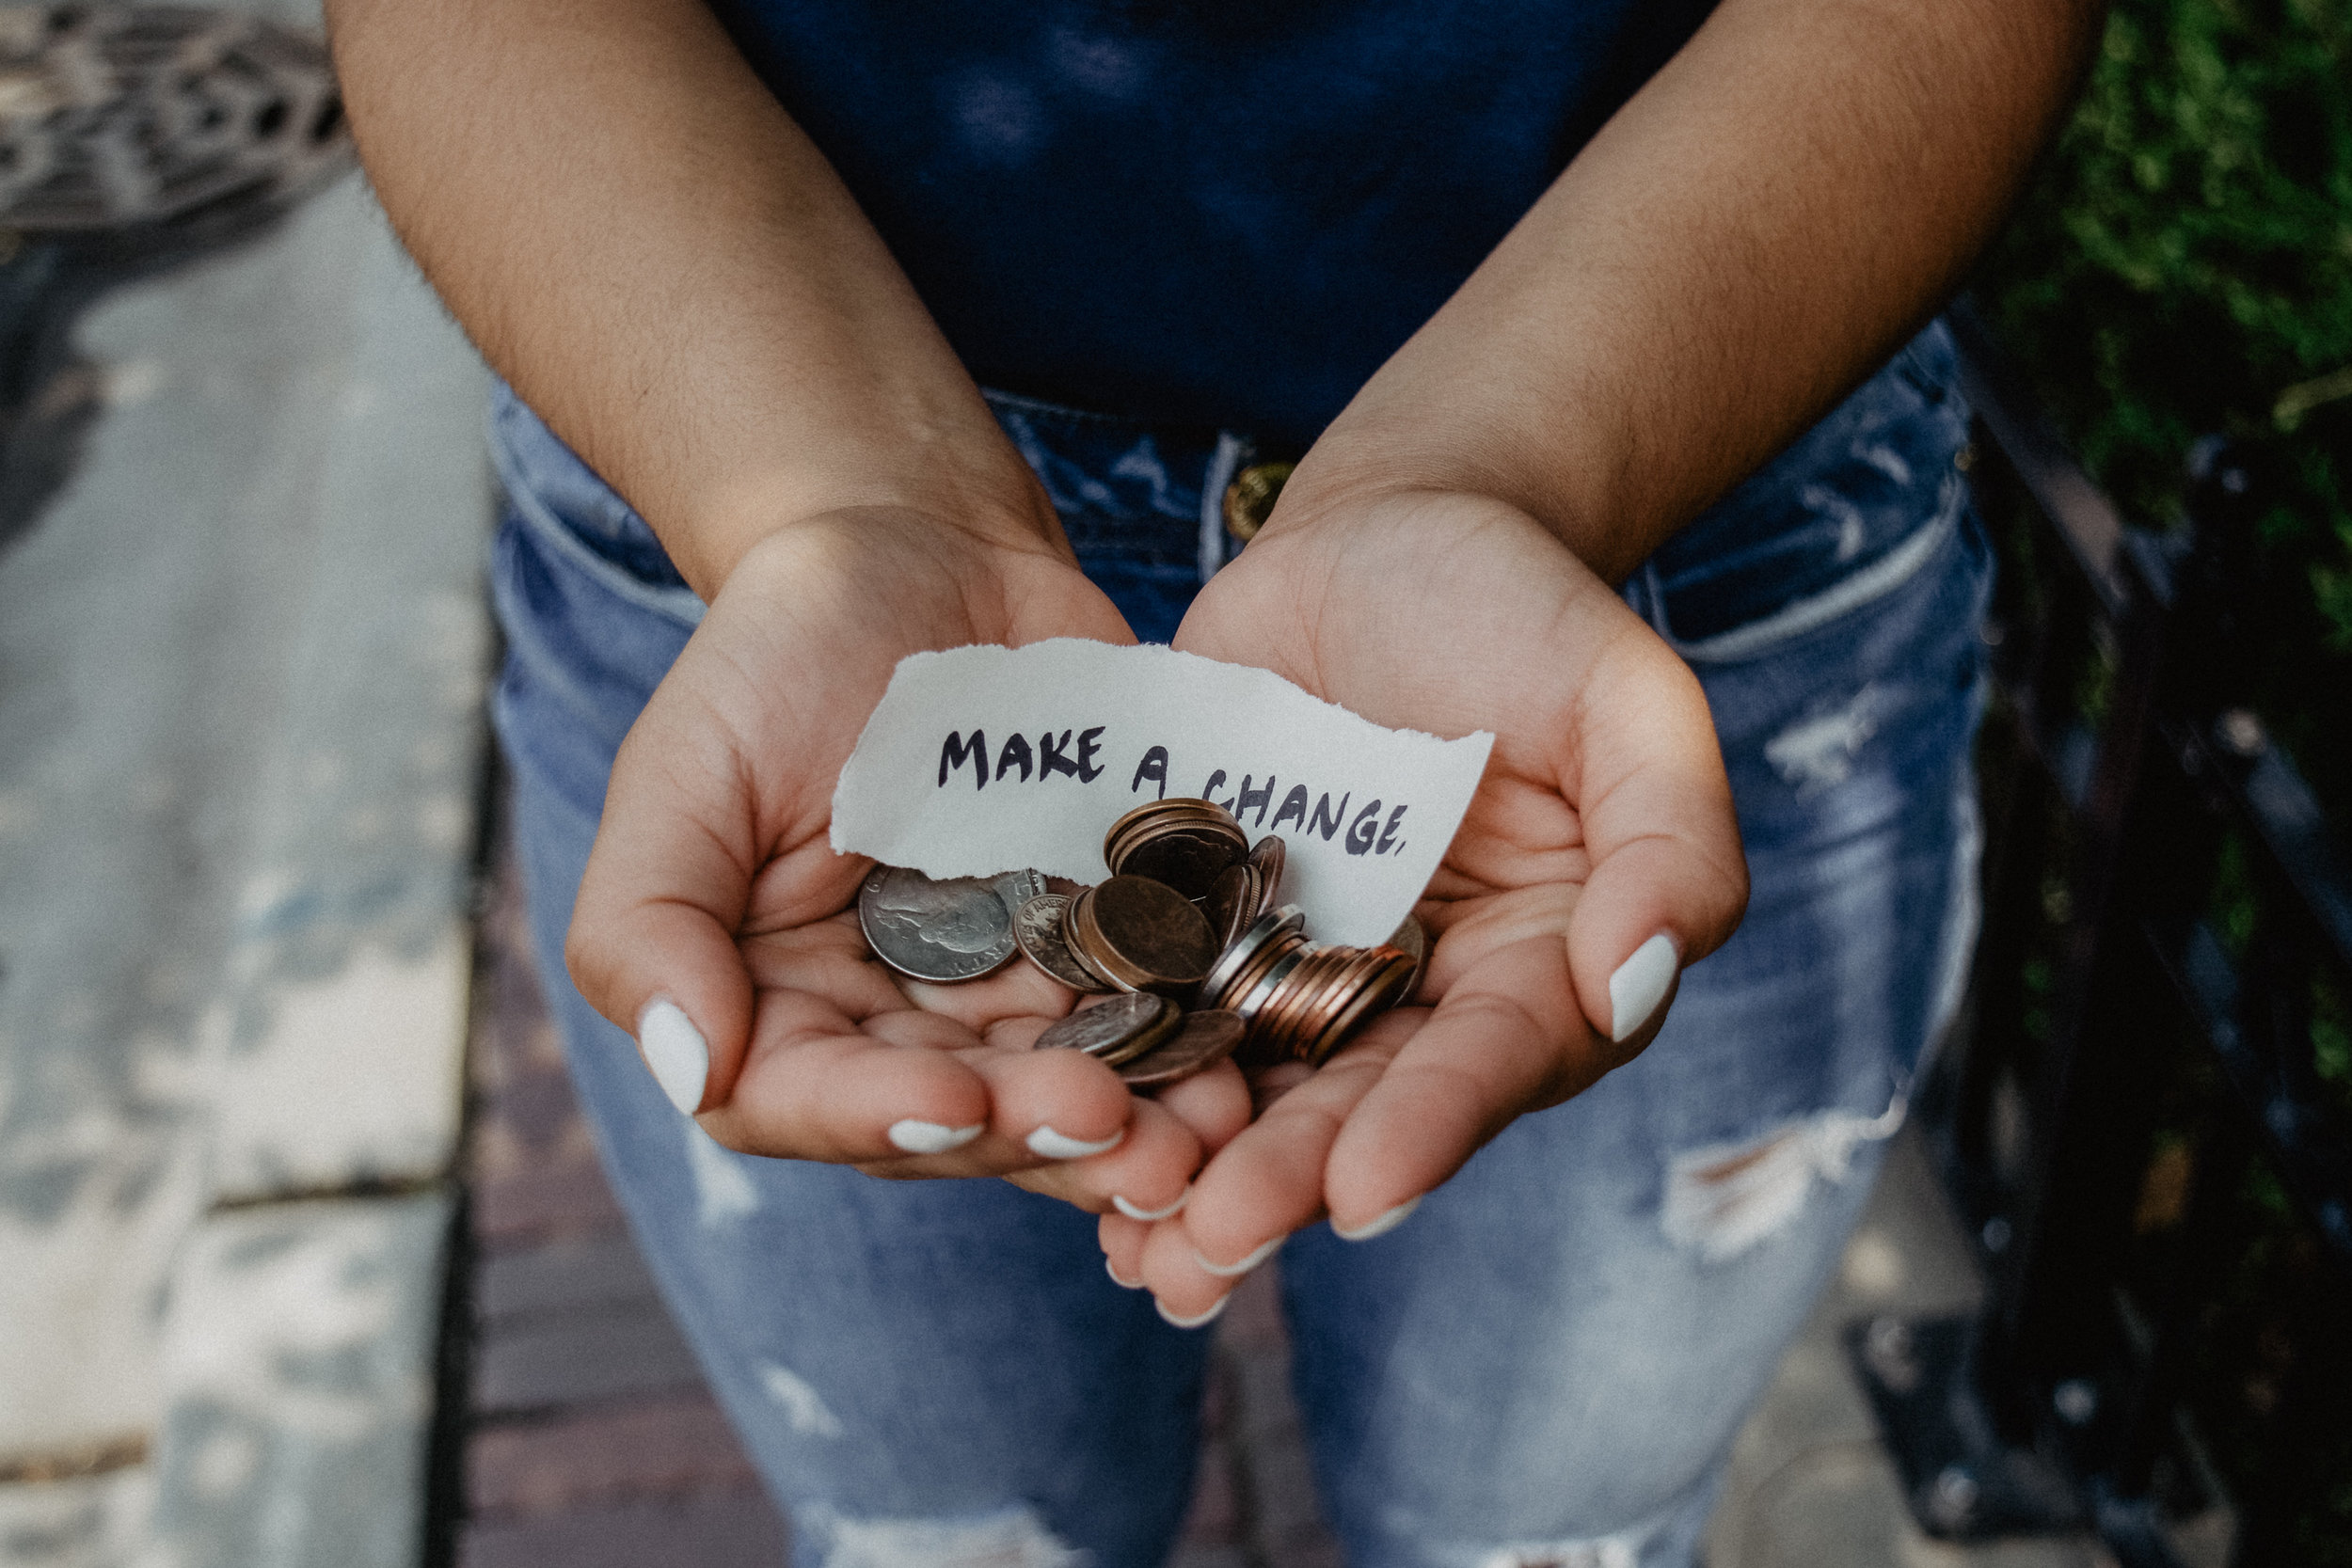 Tax-Smart Charitable Giving - Why charitable giving can both make a change for those that need it and help your maintain assets.Your End of Year Checklist for Tax-Smart Charitable Giving